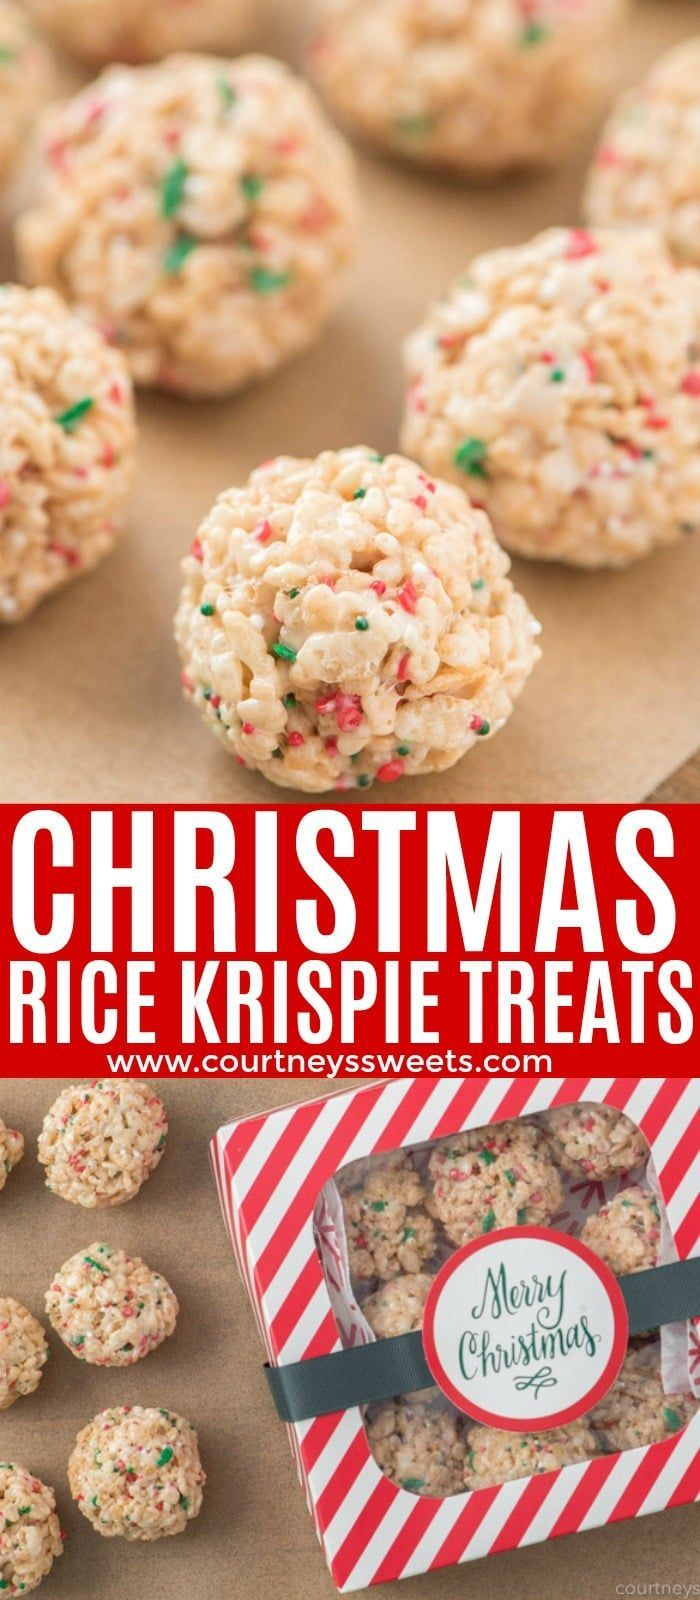 Yummy Christmas Rice Krispie Treats are a quick and easy non-traditional cookie #ricekrispiestreats